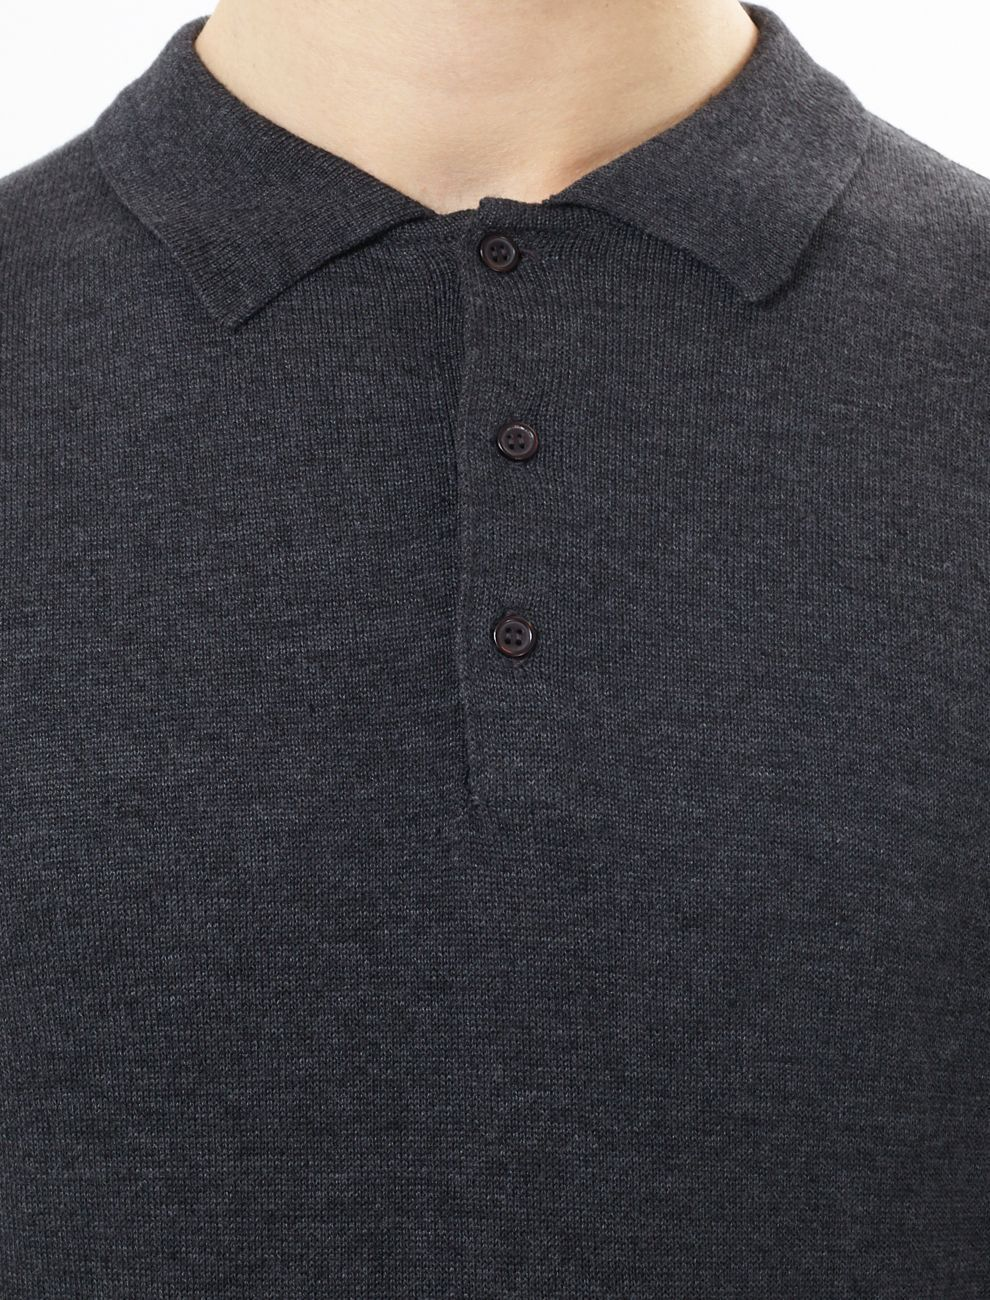 Lightweight Knitted Polo Long Sleeve Charcoal